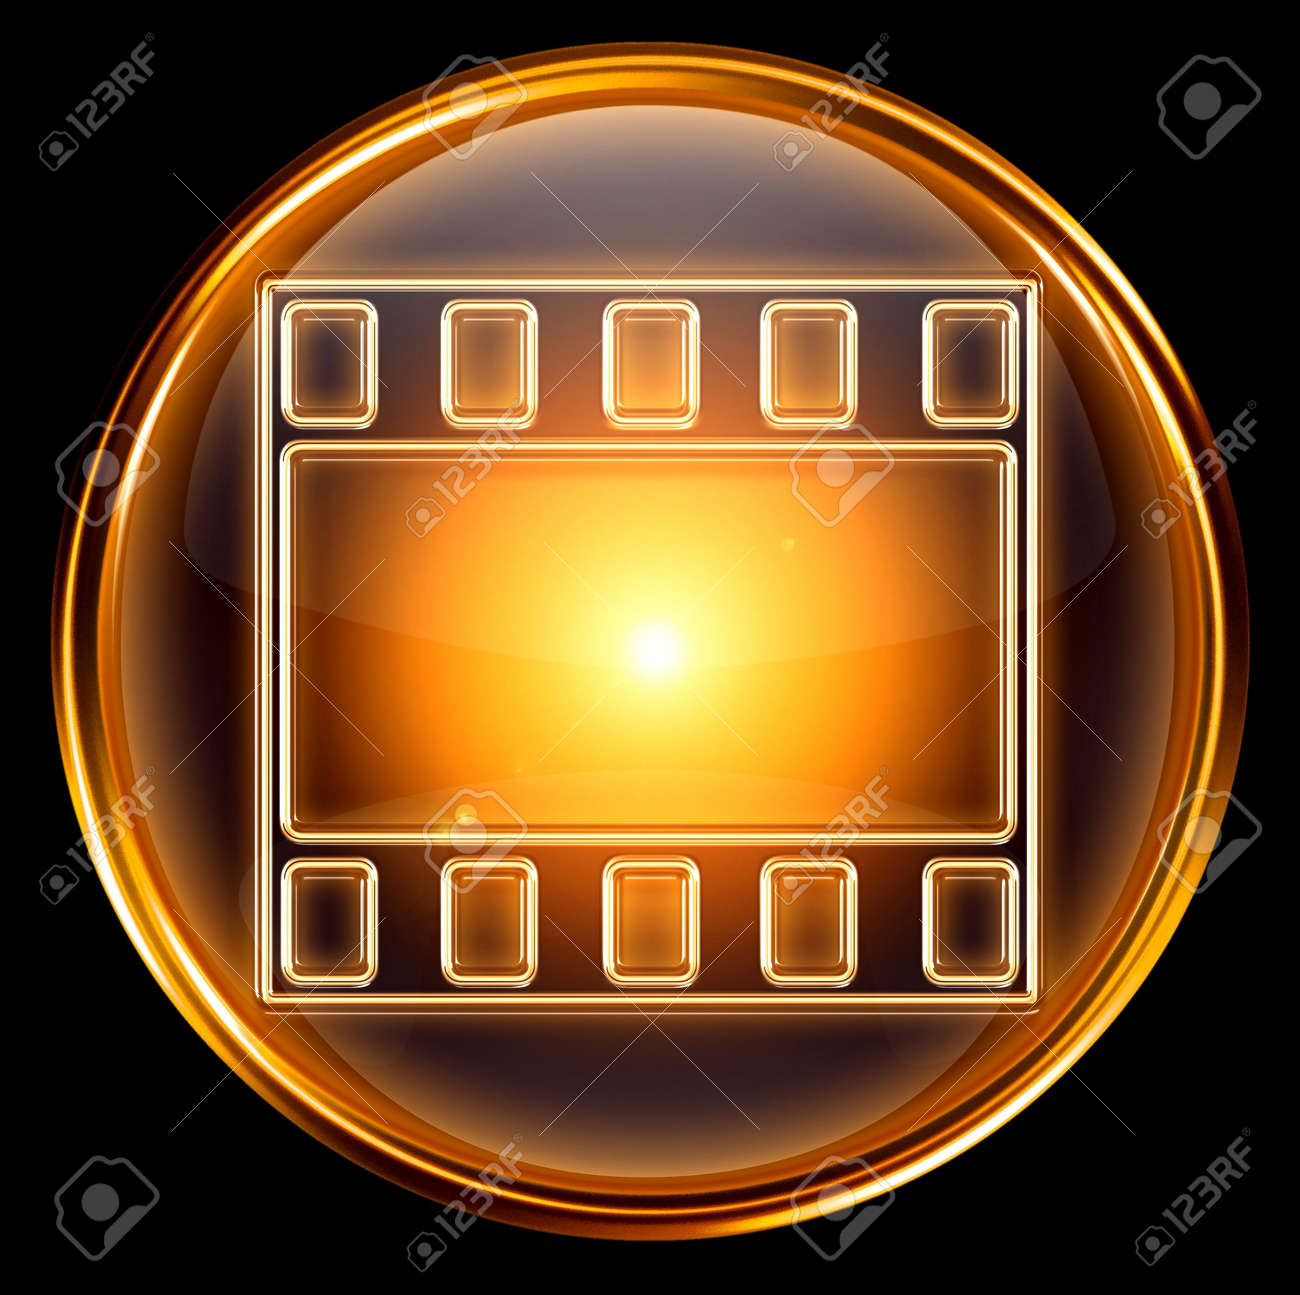 video icon gold, isolated on black background Stock Photo - 5973099